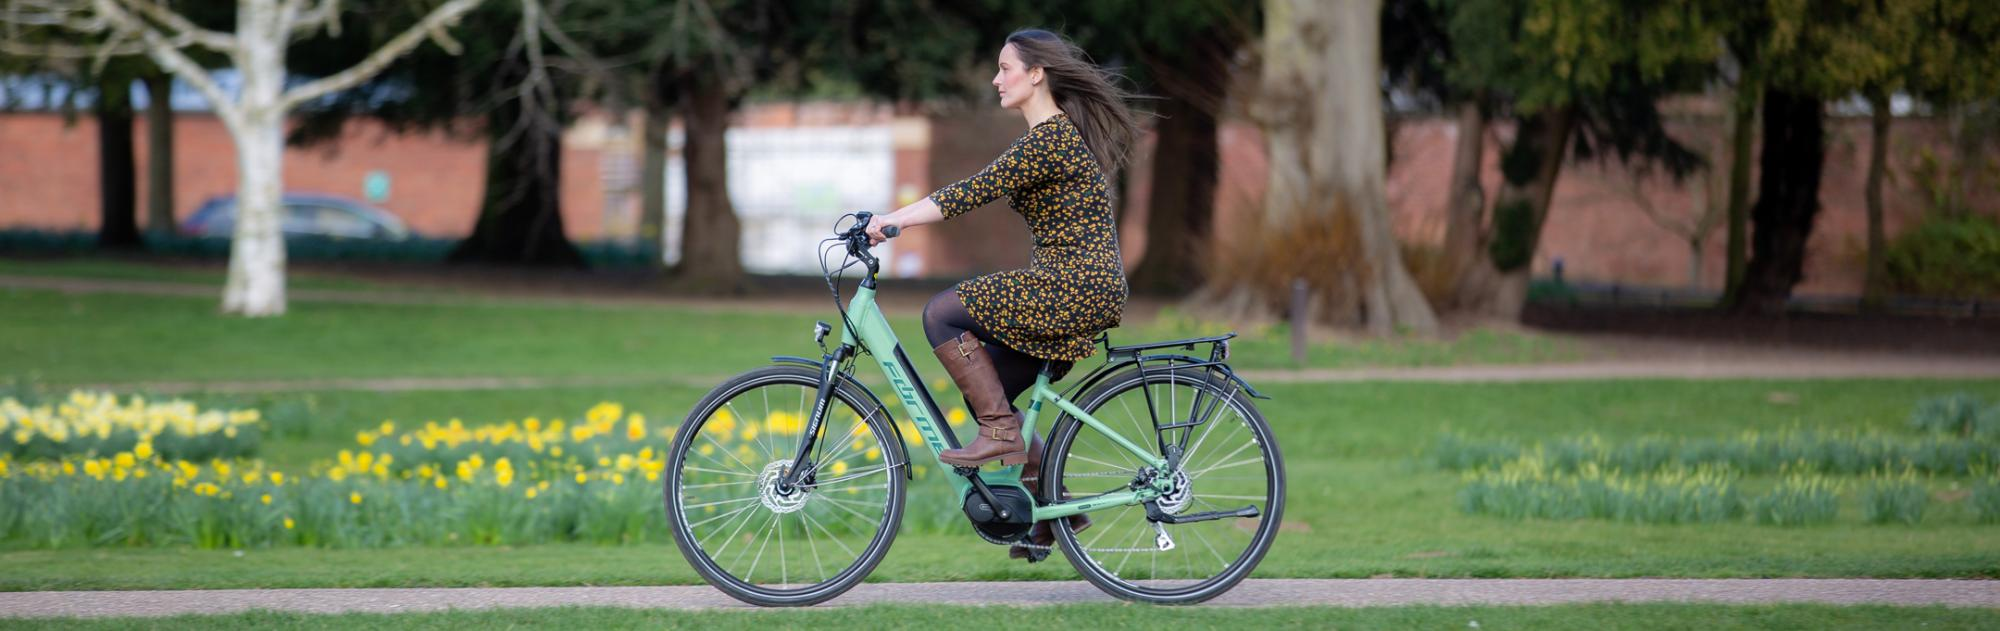 Change your life, with an e-bike